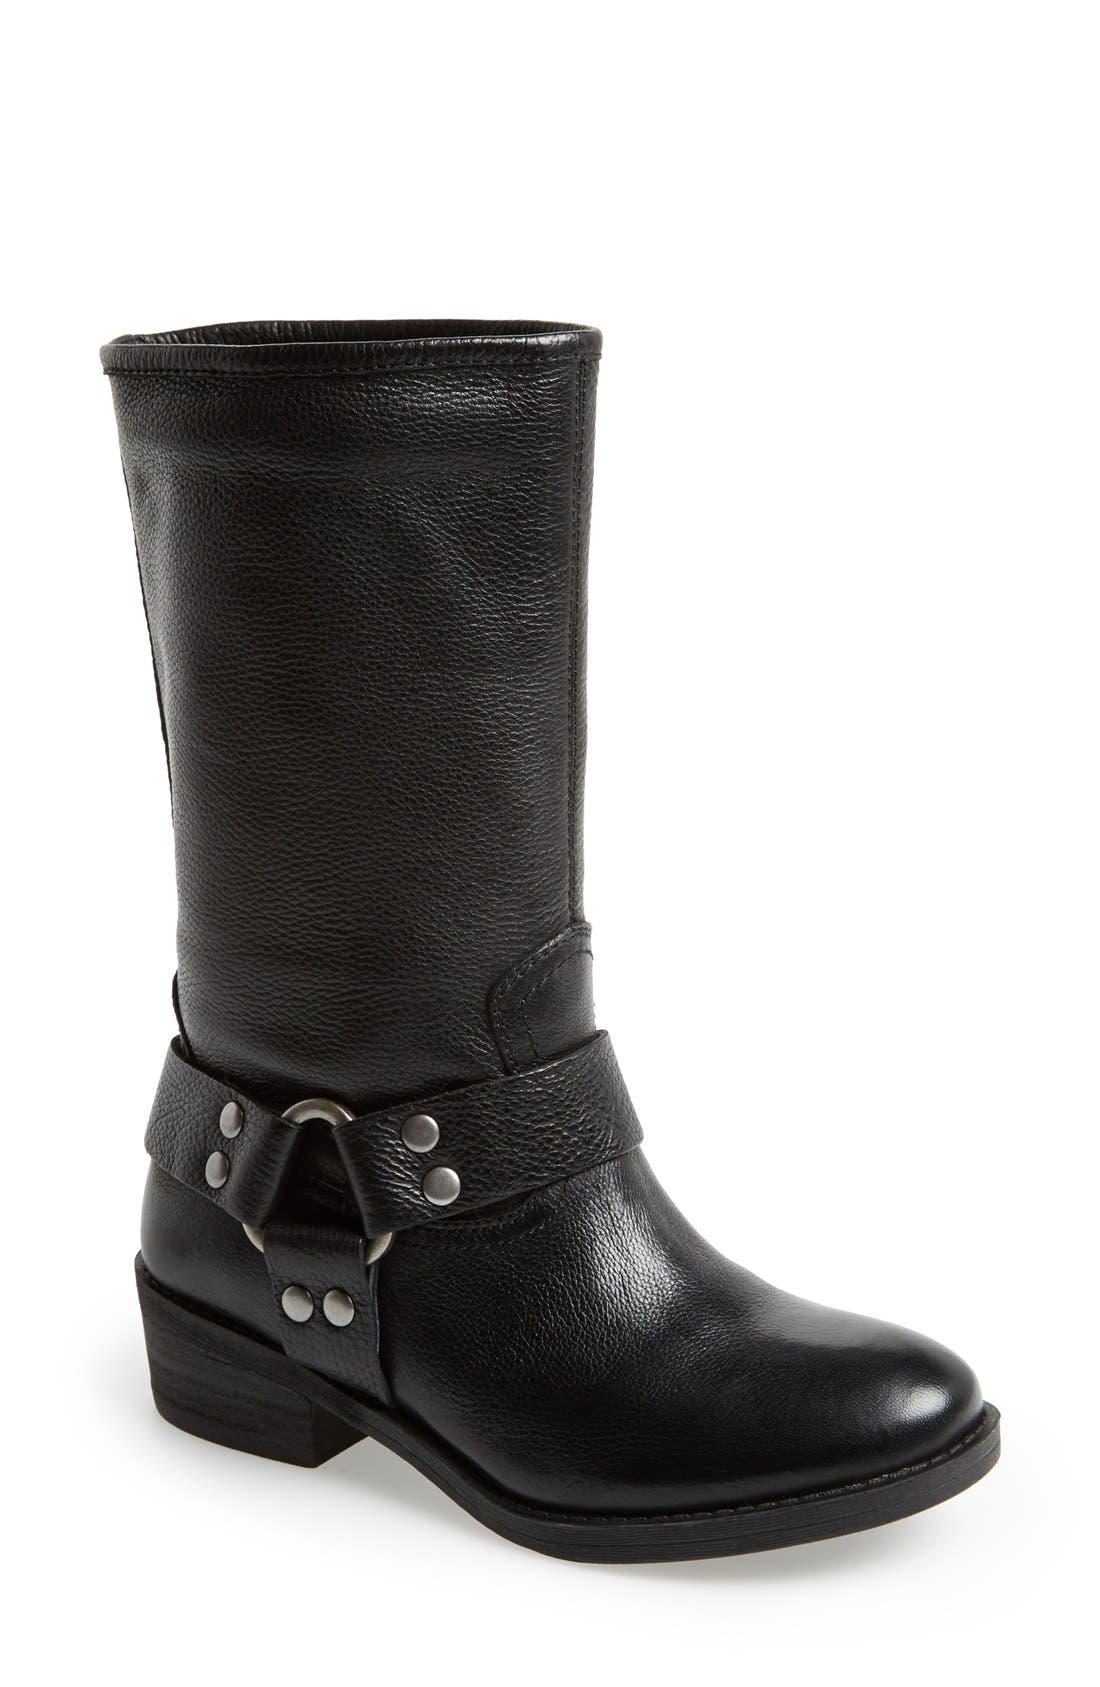 Alternate Image 1 Selected - Lucky Brand 'Rolanda' Leather Harness Boot (Women)